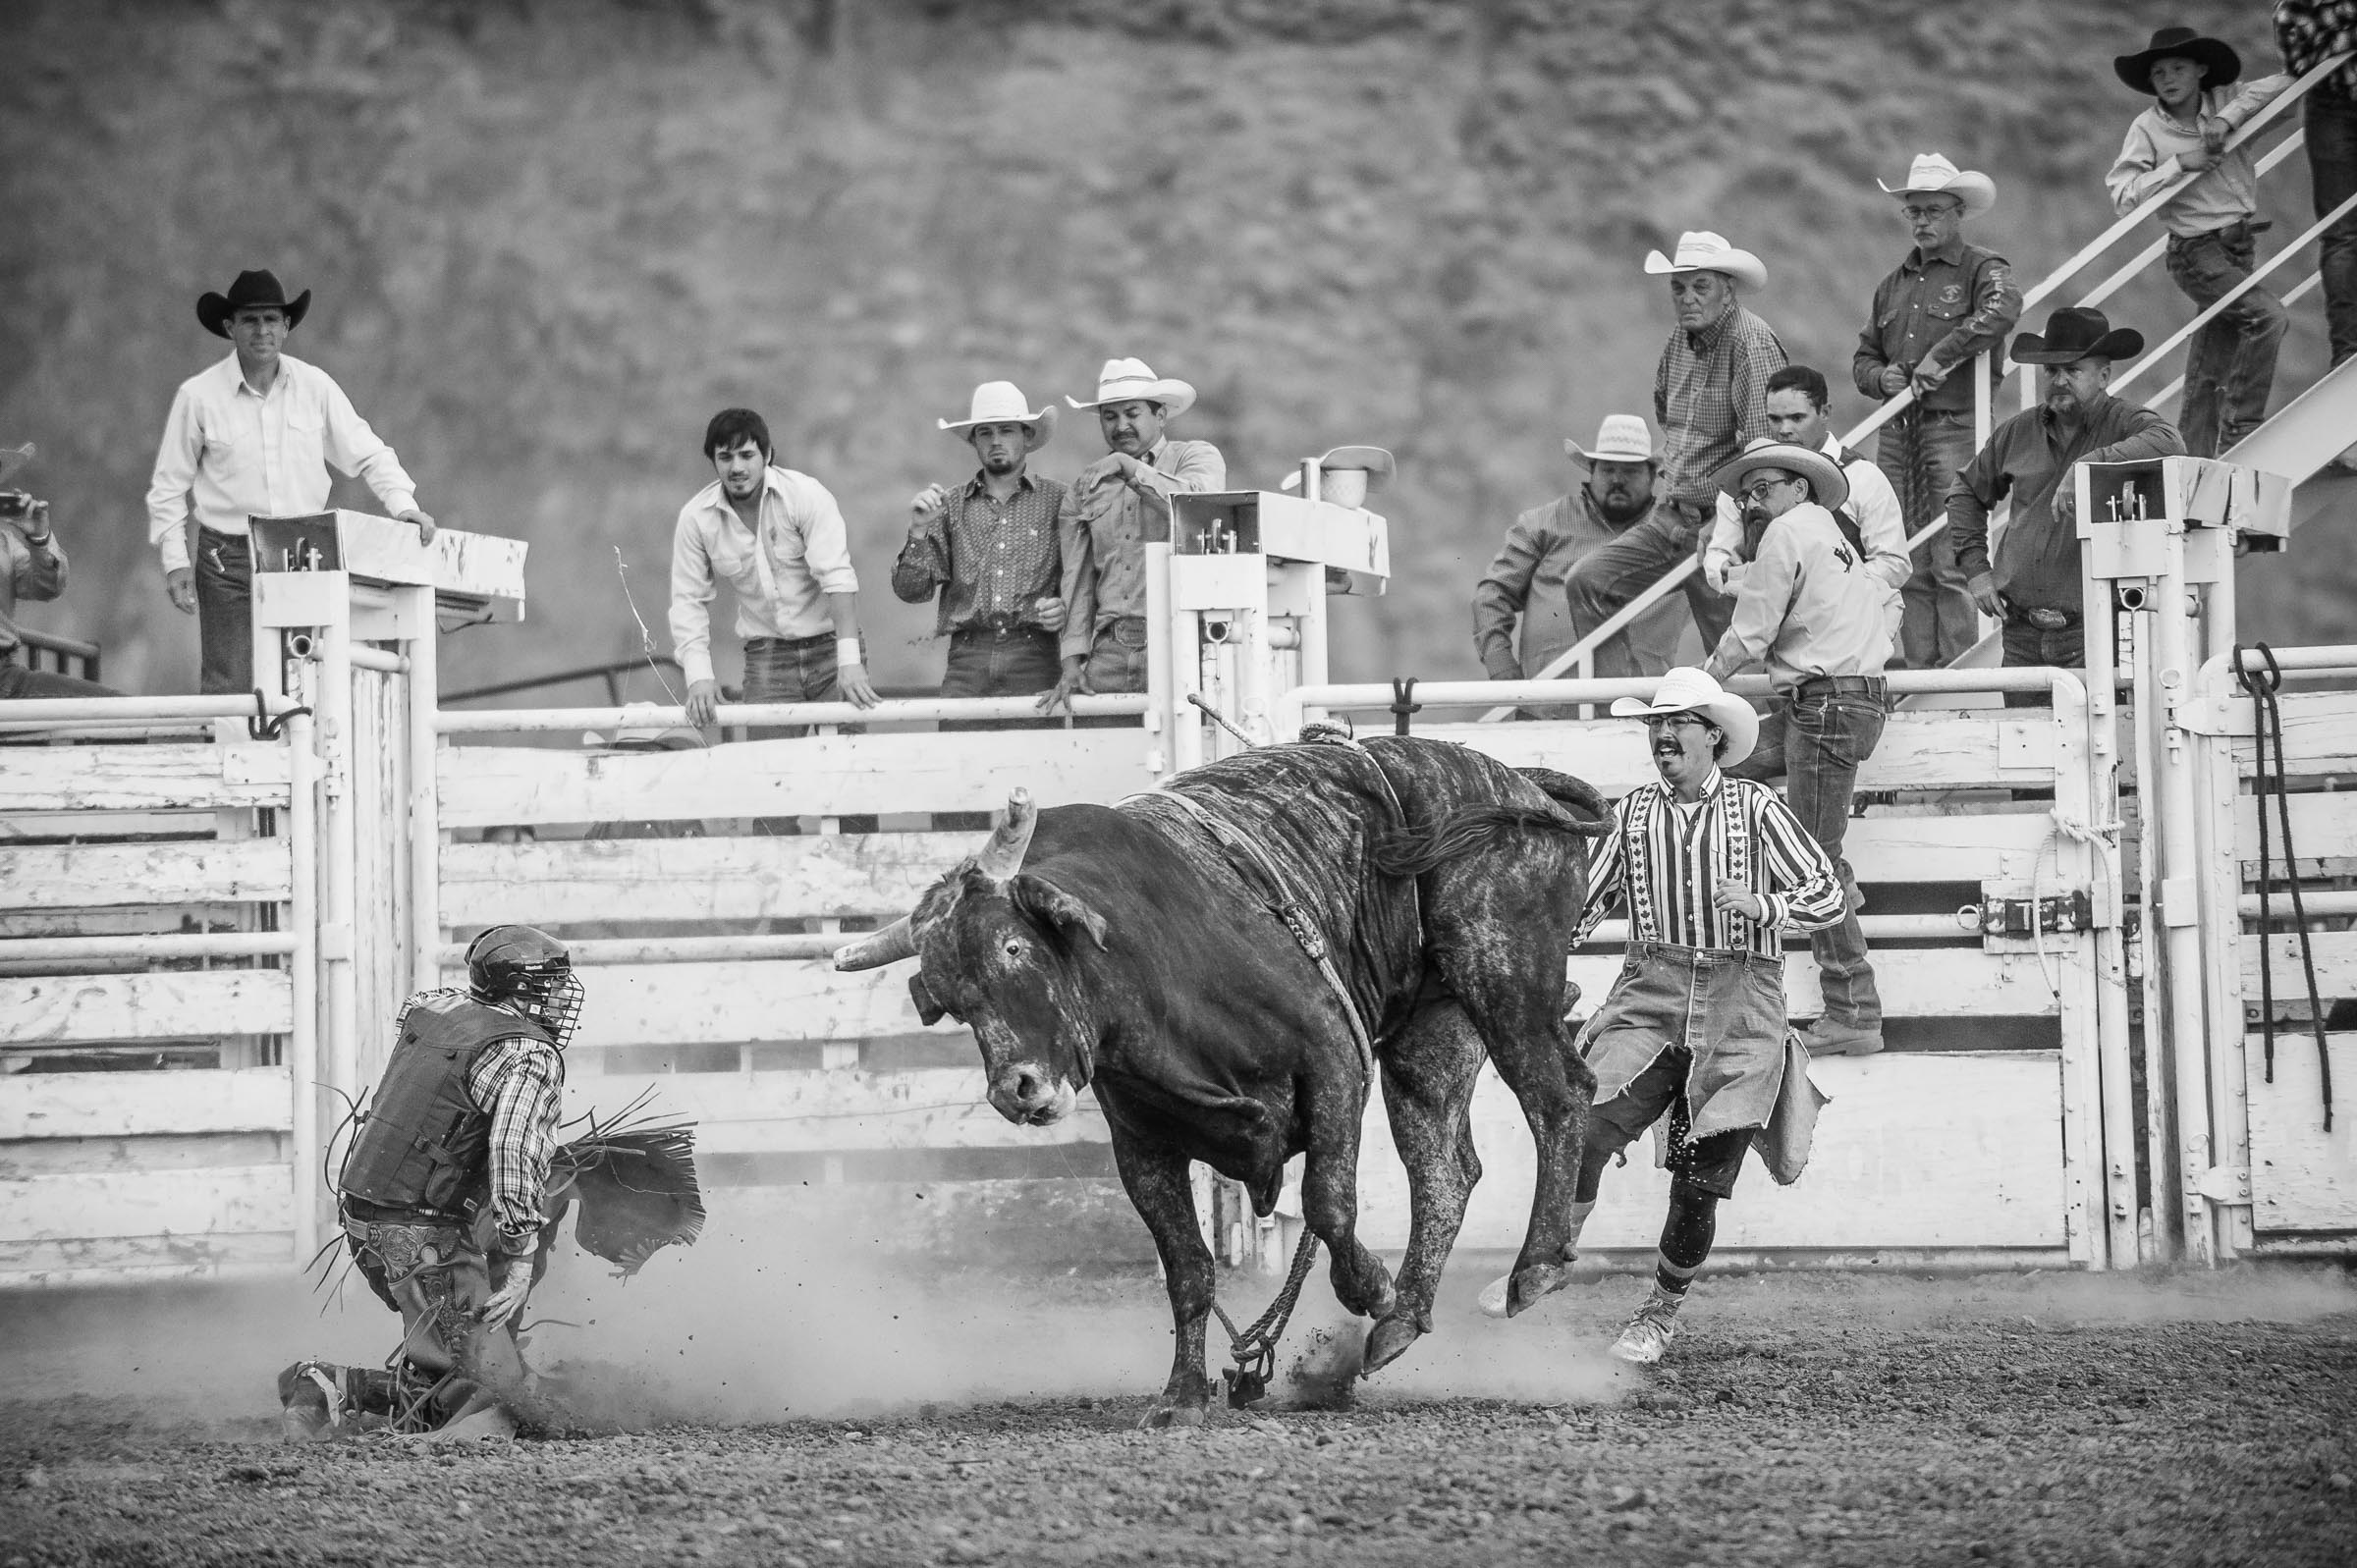 rodeo_whisky-bent_bynum-2626.JPG